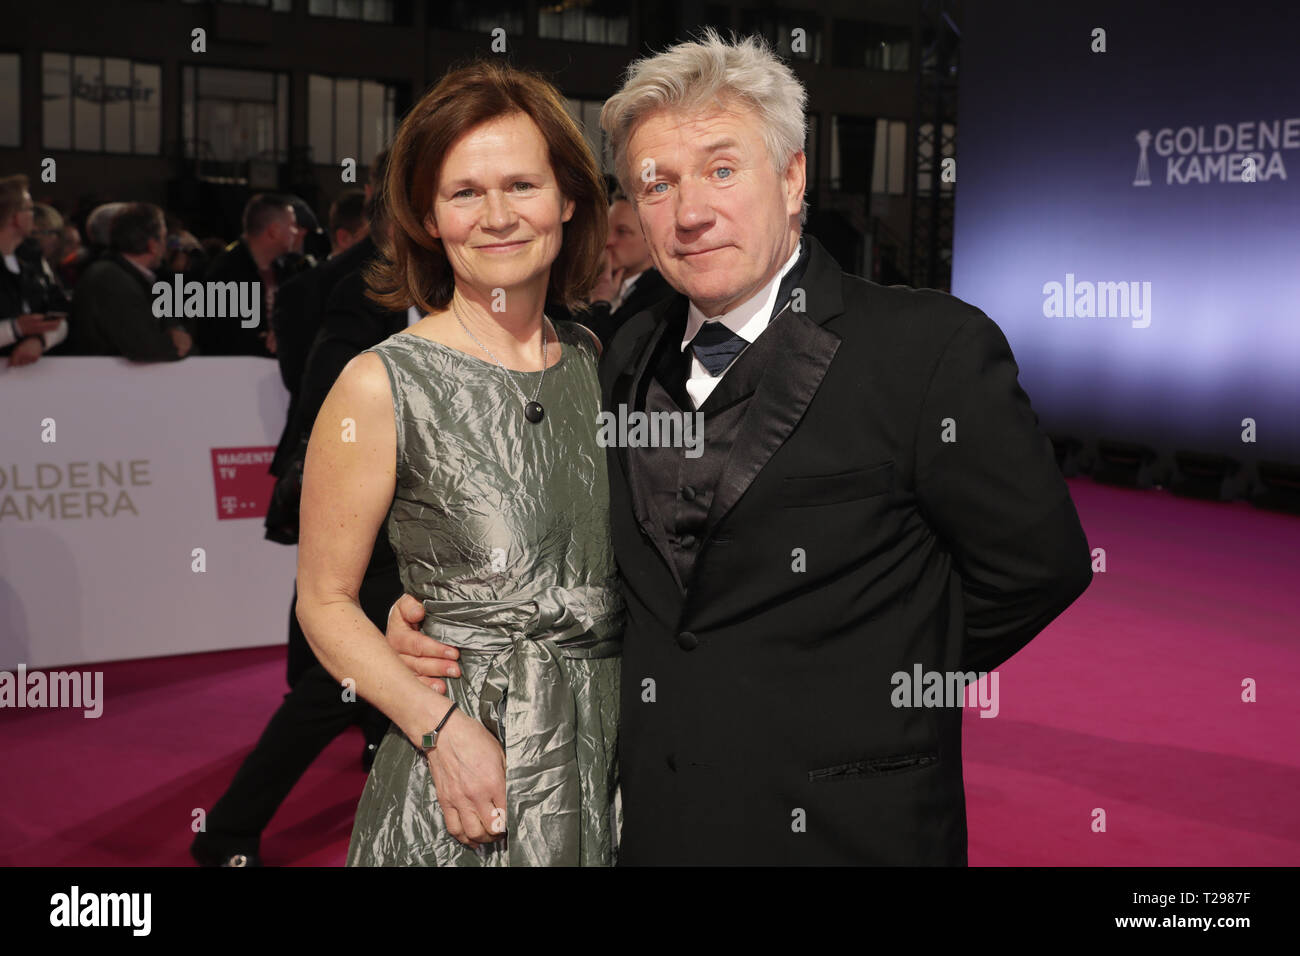 Berlin, Germany. 30th Mar, 2019. Jörg Schüttauf, actor, and his wife Martina Beeck attend the award ceremony for the Golden Camera. Credit: Christoph Soeder/dpa/Alamy Live News - Stock Image